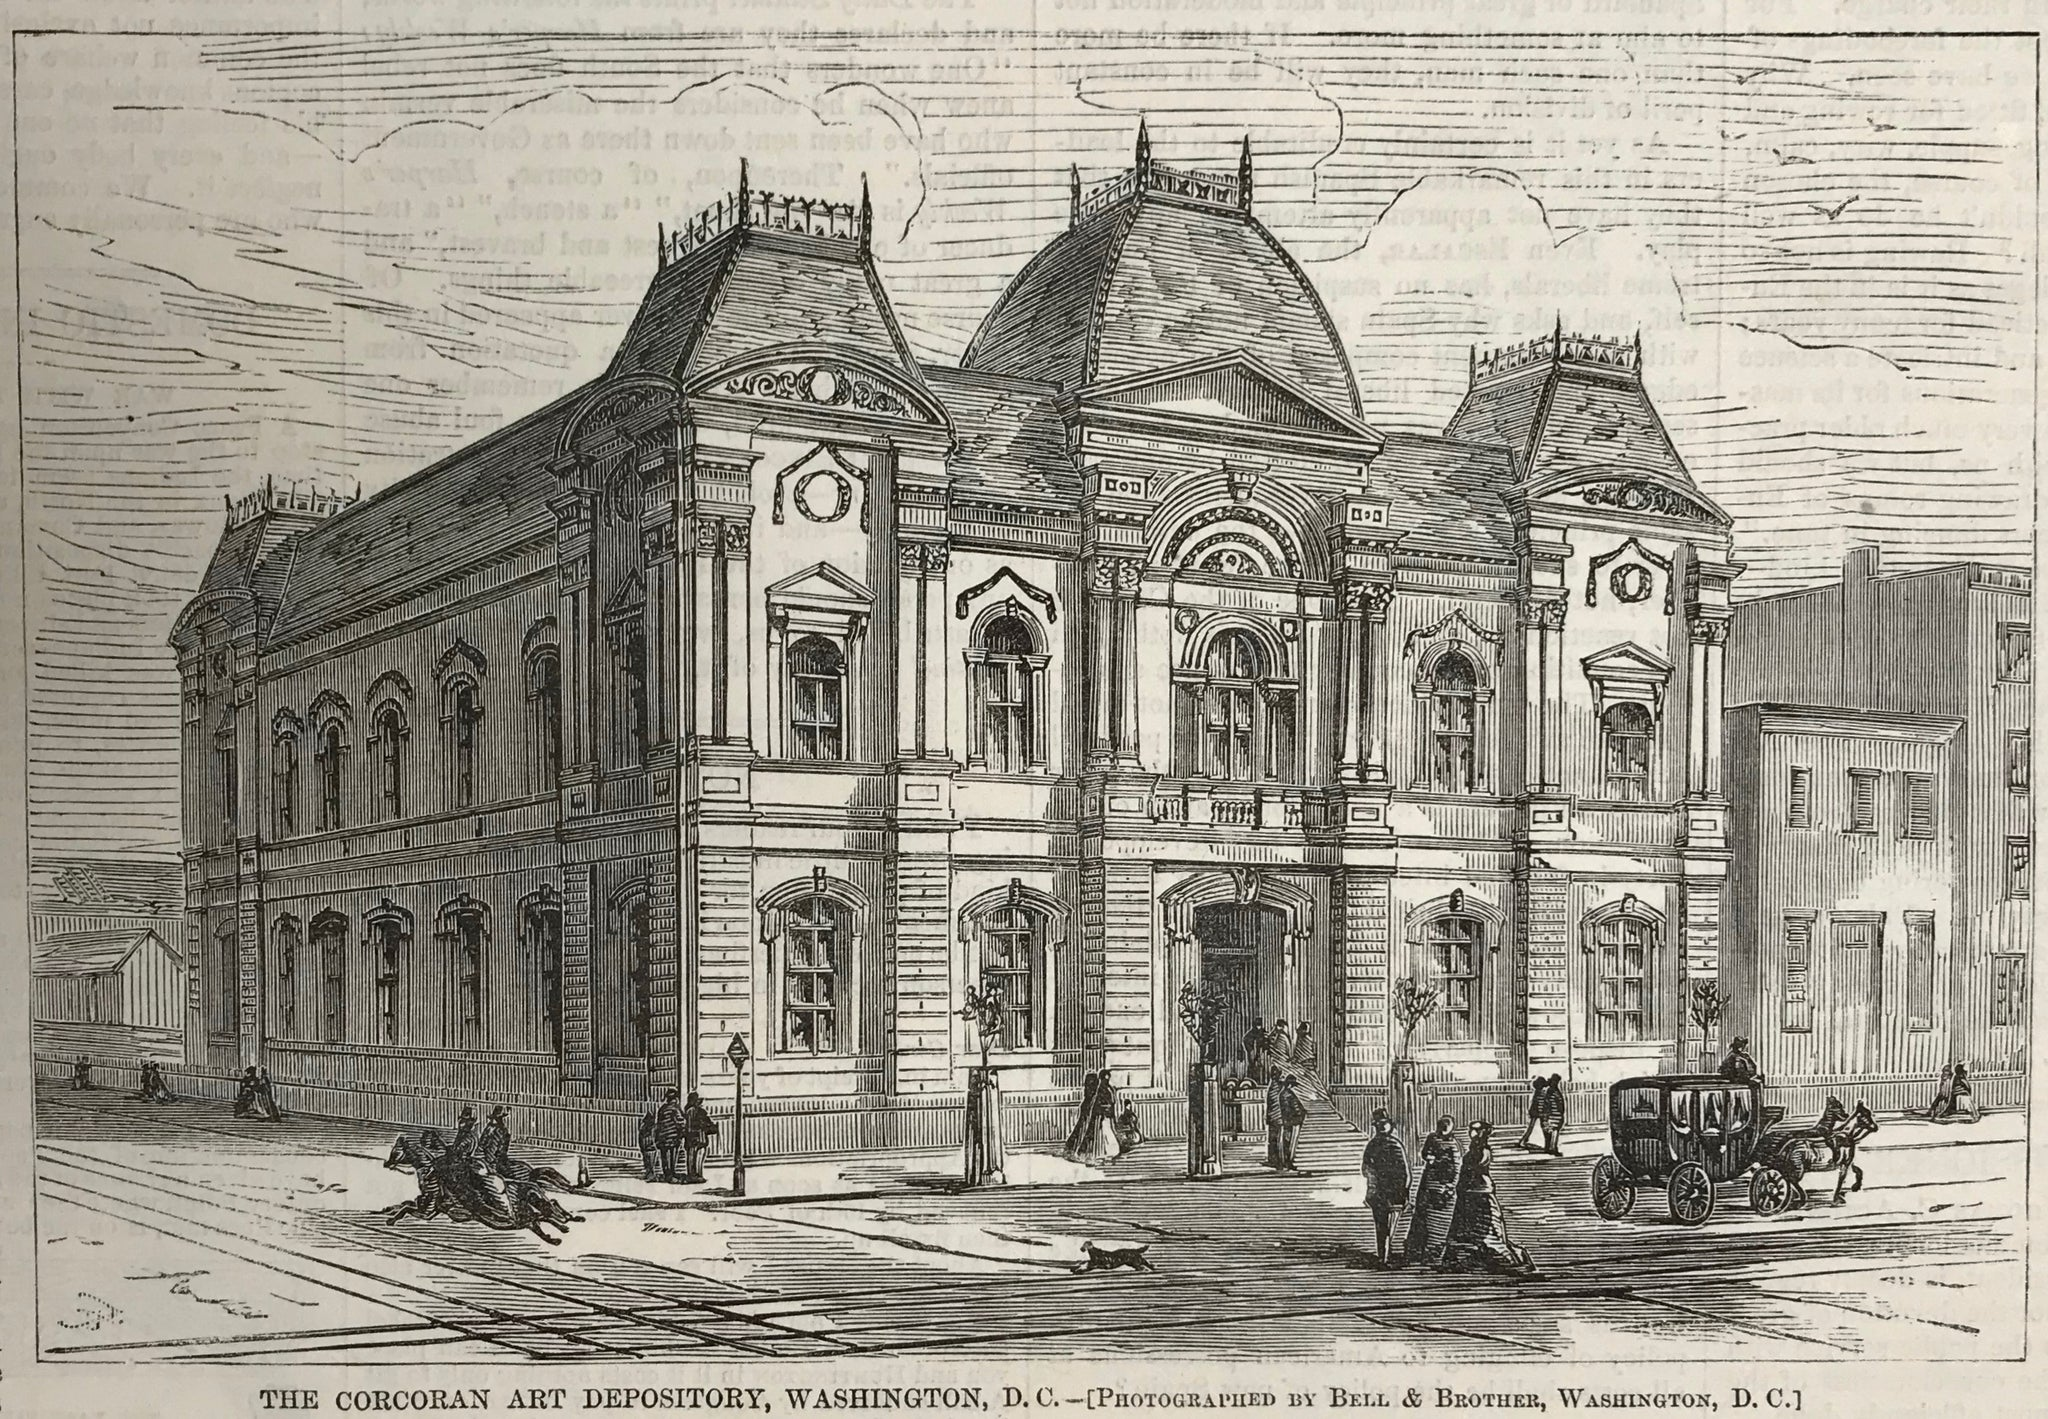 THE CORCORAN ART DEPOSITORY, WASHINGTON, D.C.  Wood engrasving, 1869.